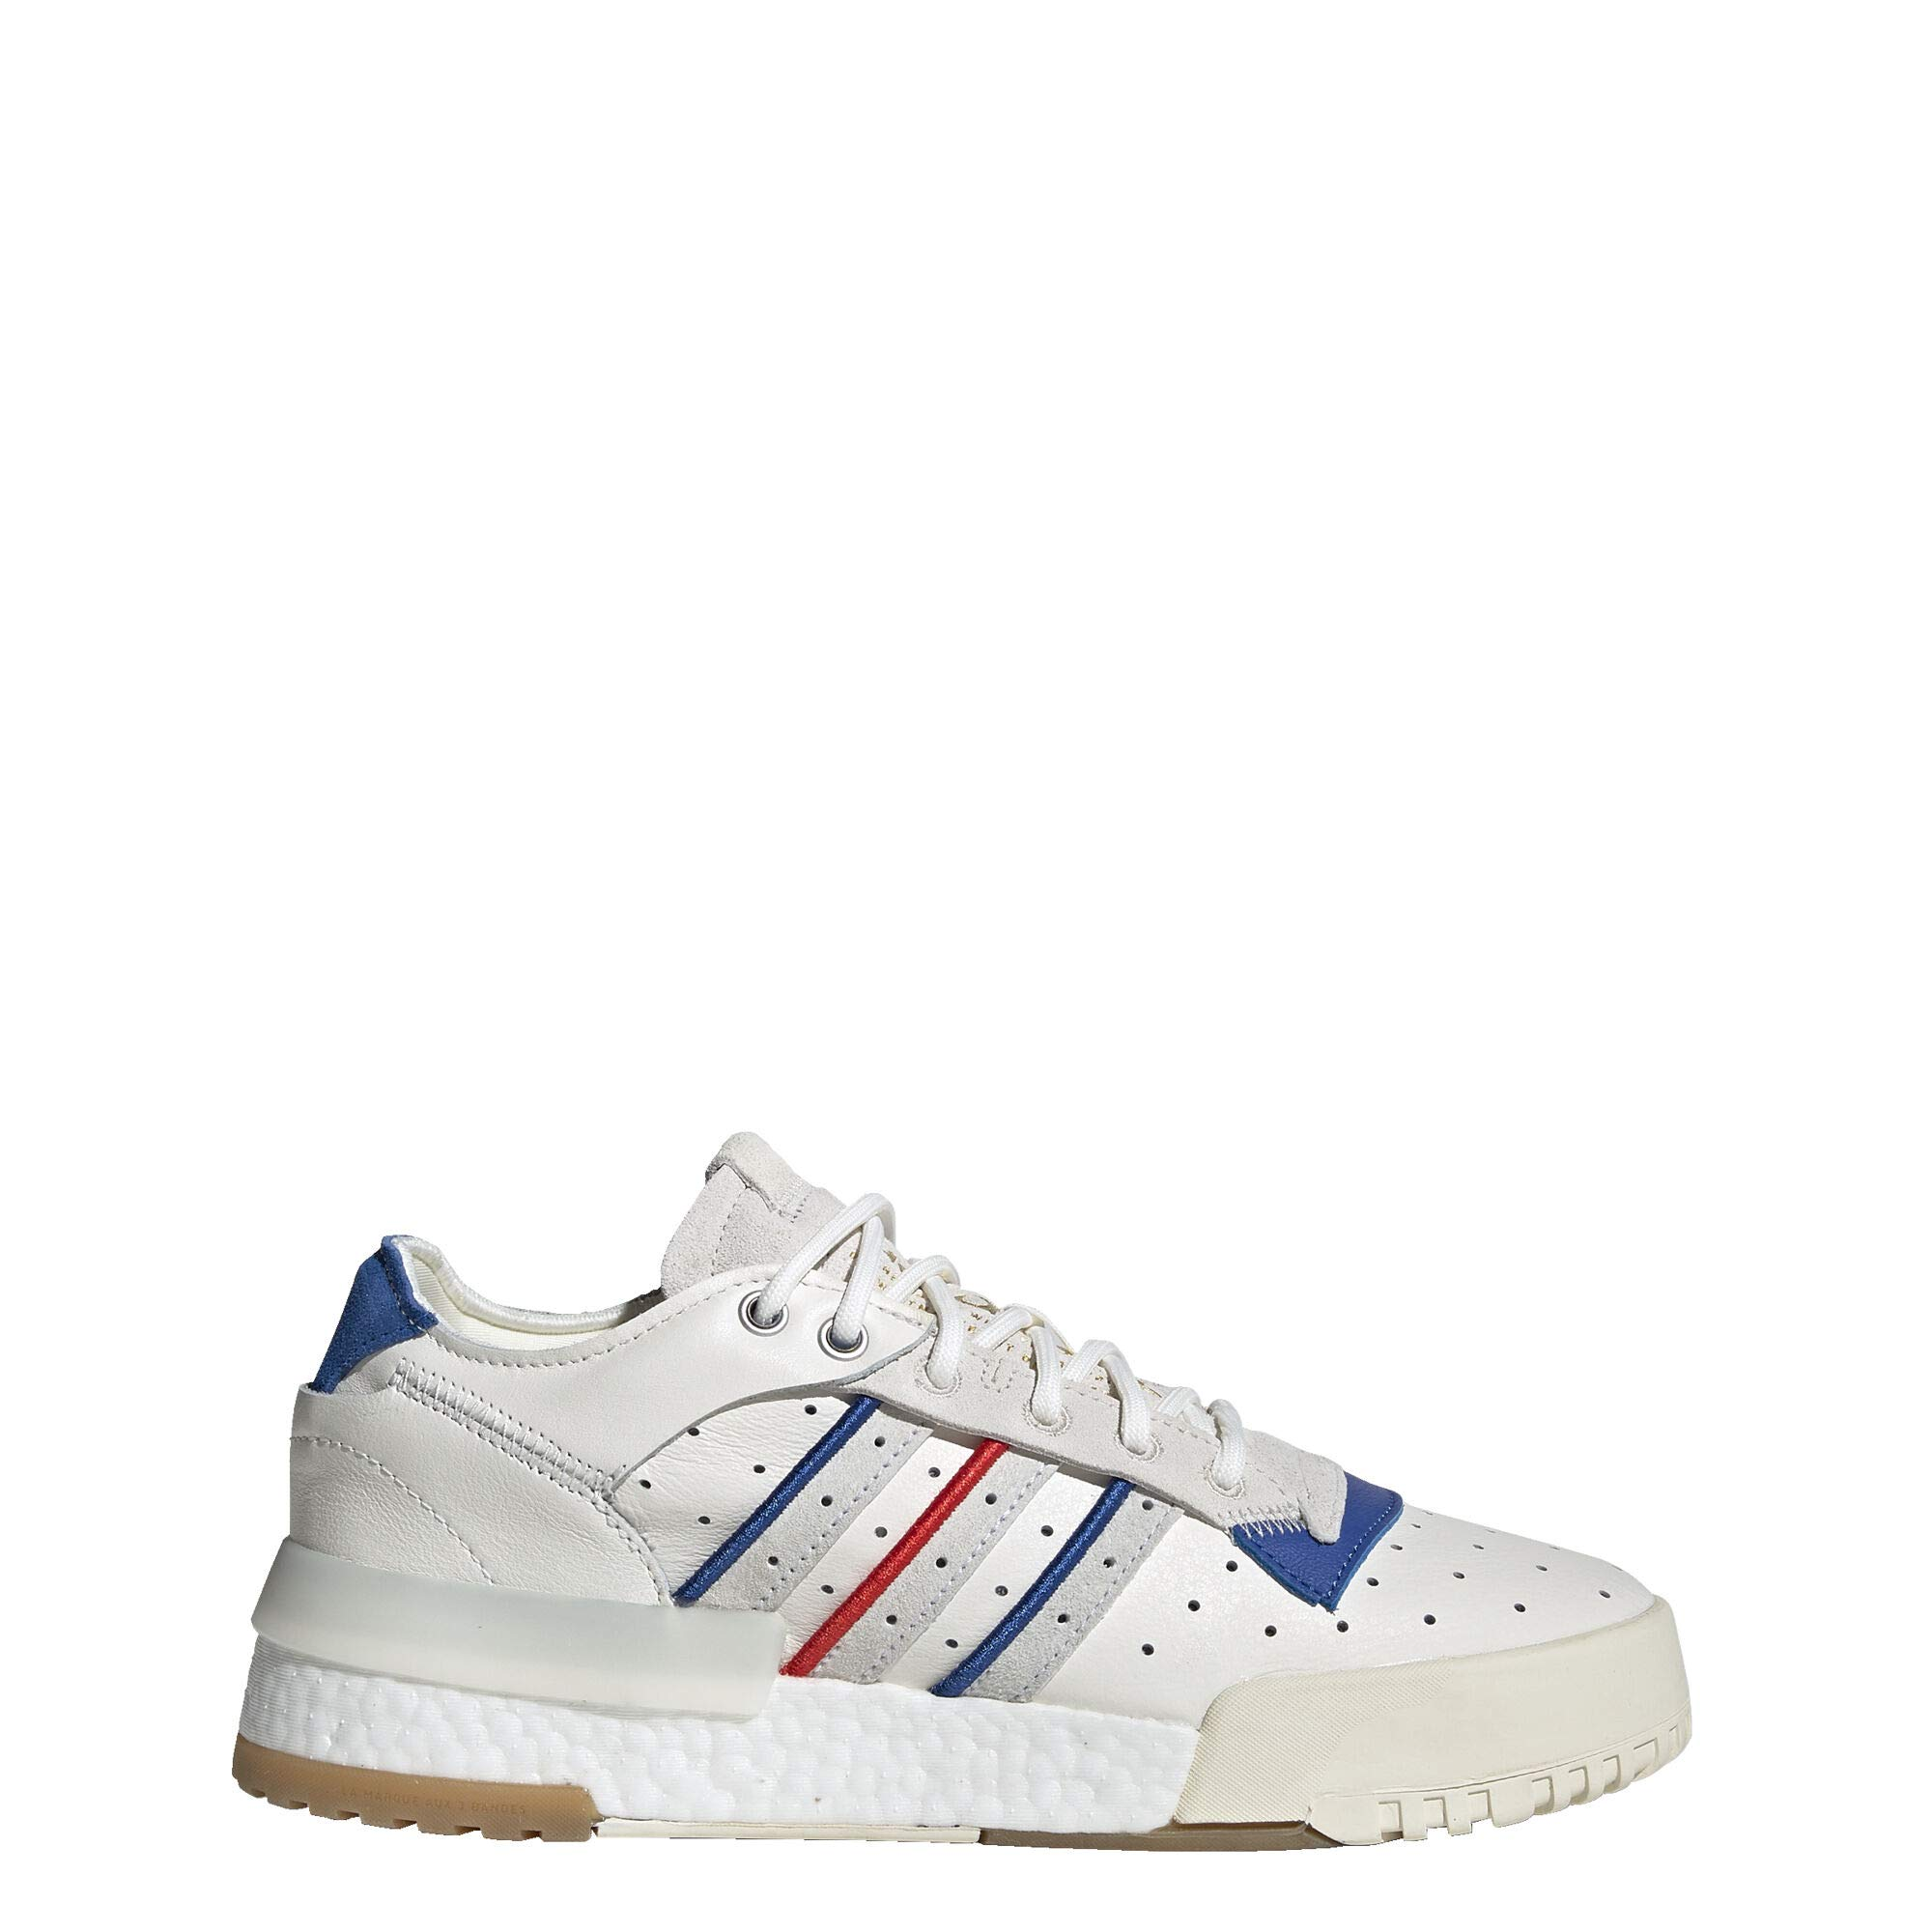 adidas Rivalry RM Low Shoes Men's, White, Size 8.5 by adidas